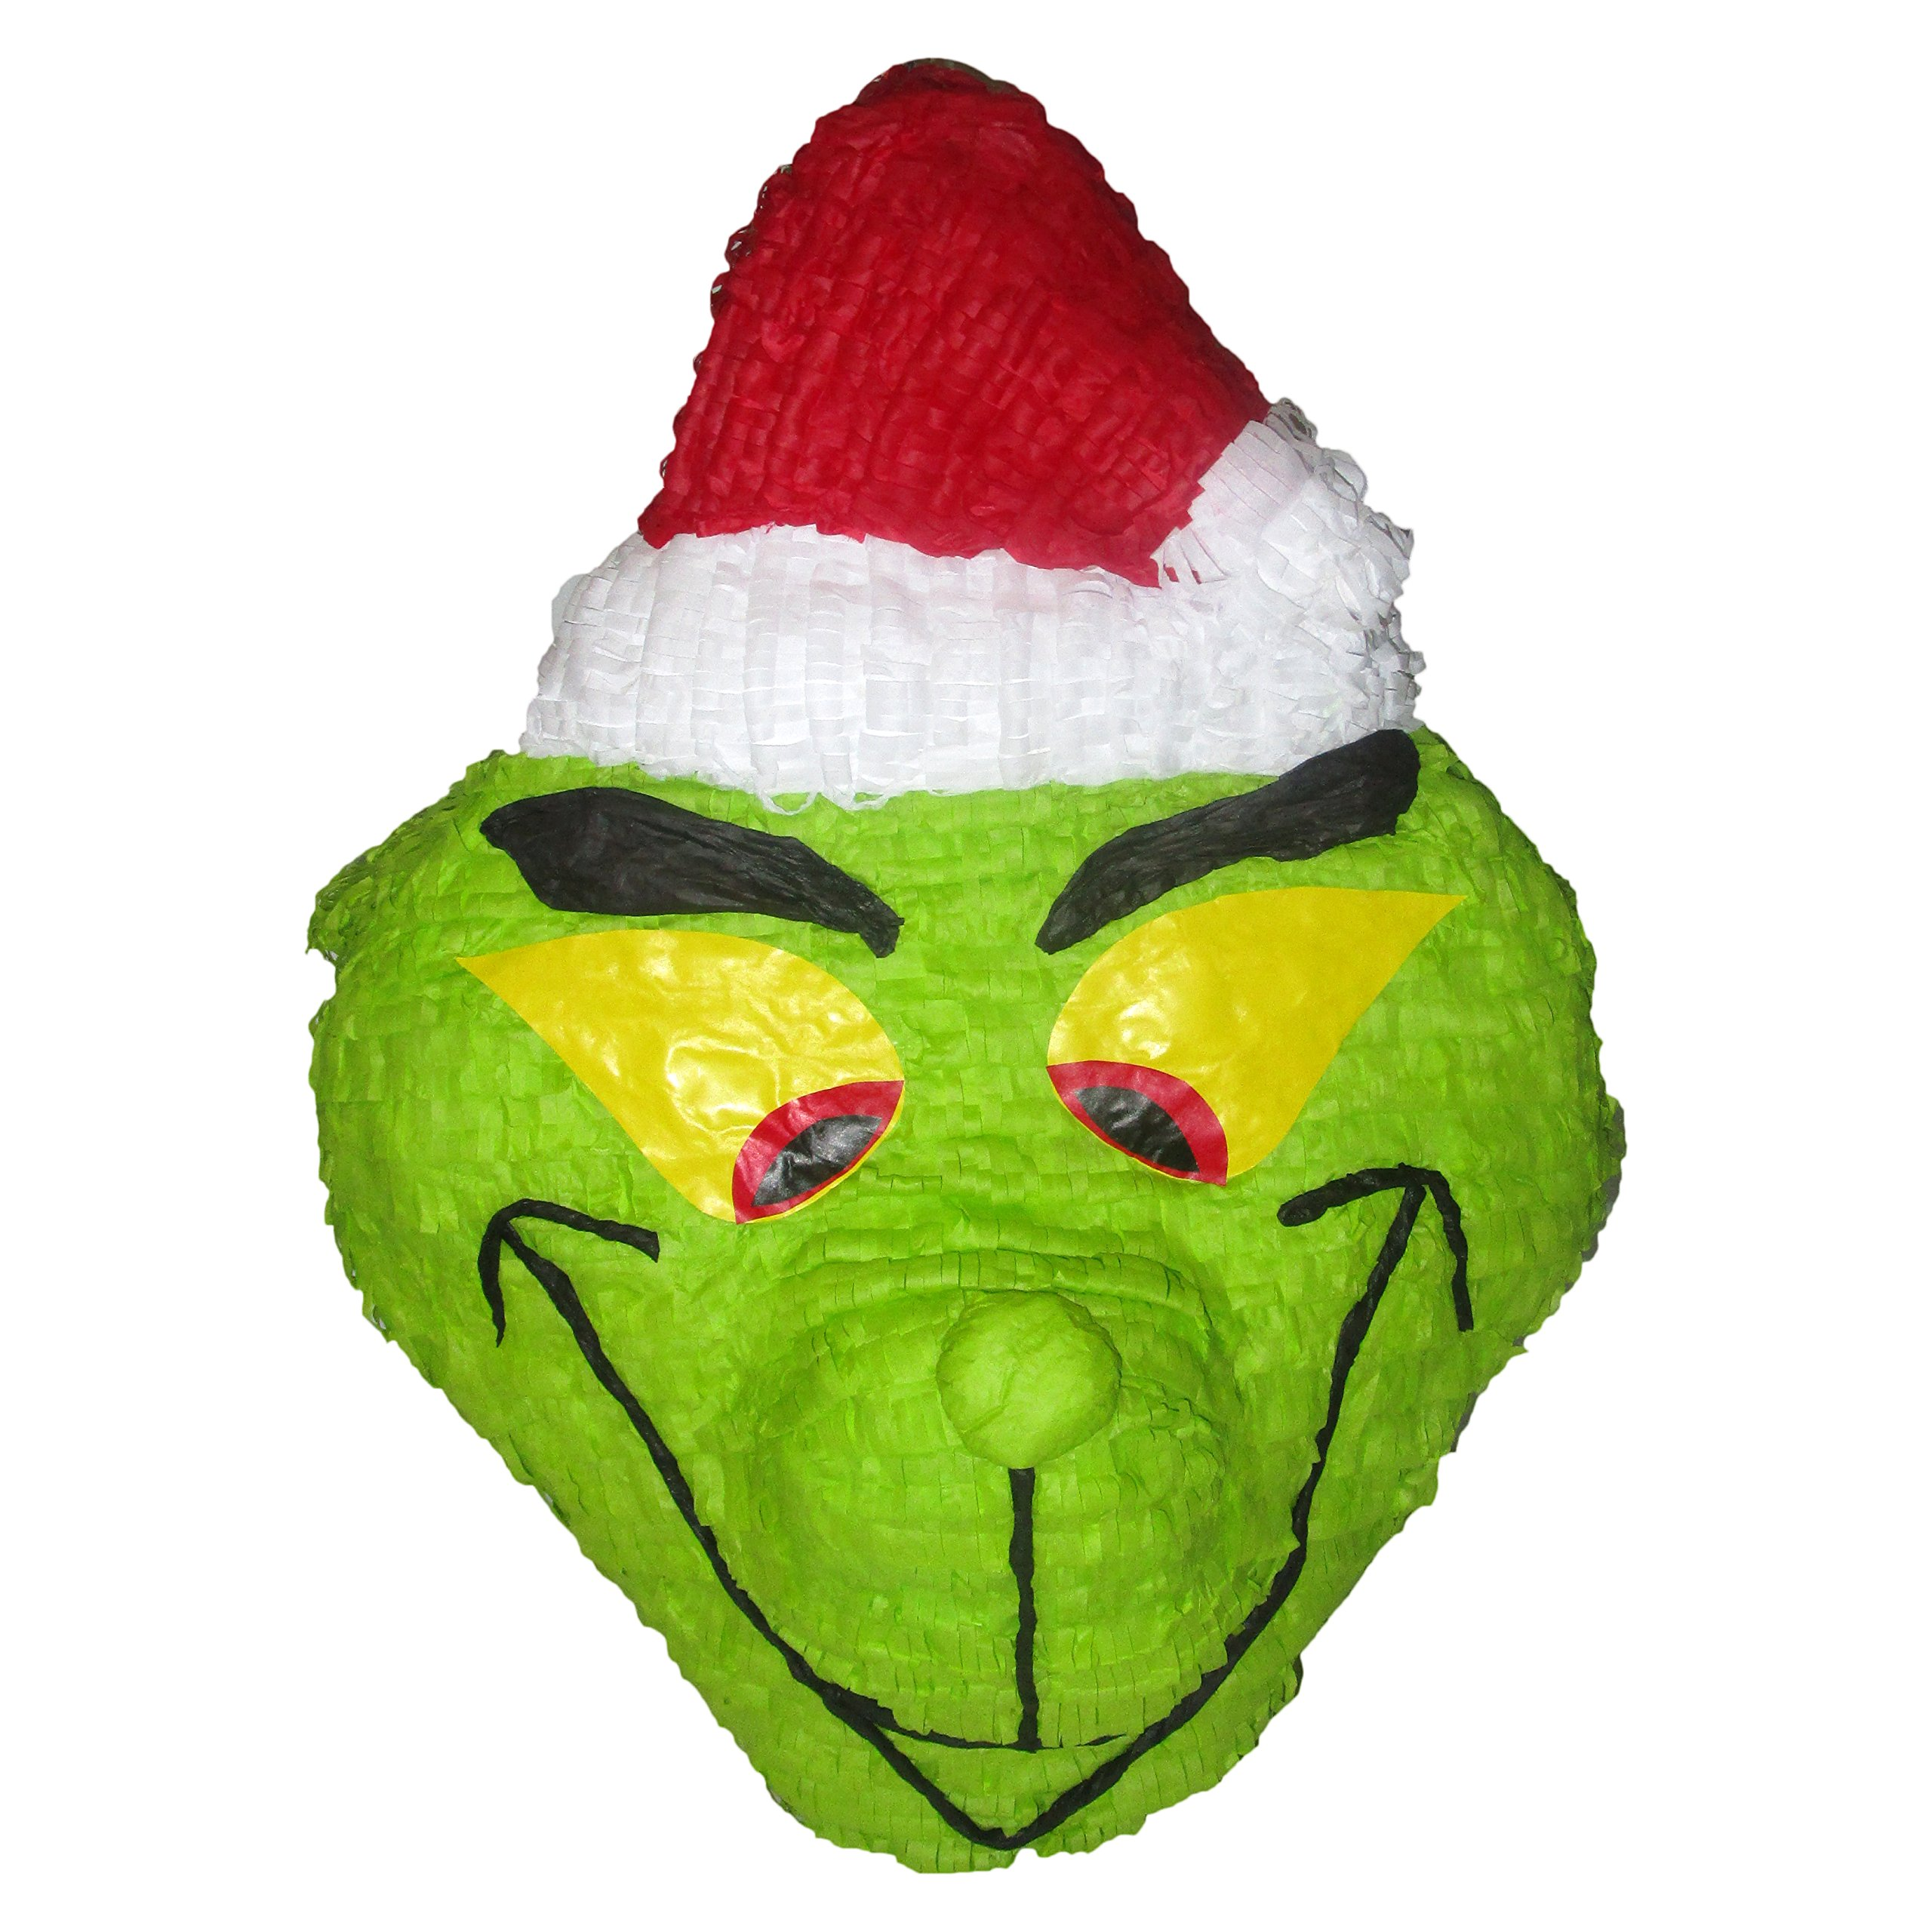 Grinch Head Pinata, 21'' Christmas Decoration, Party Game and Photo Prop by Pinatas